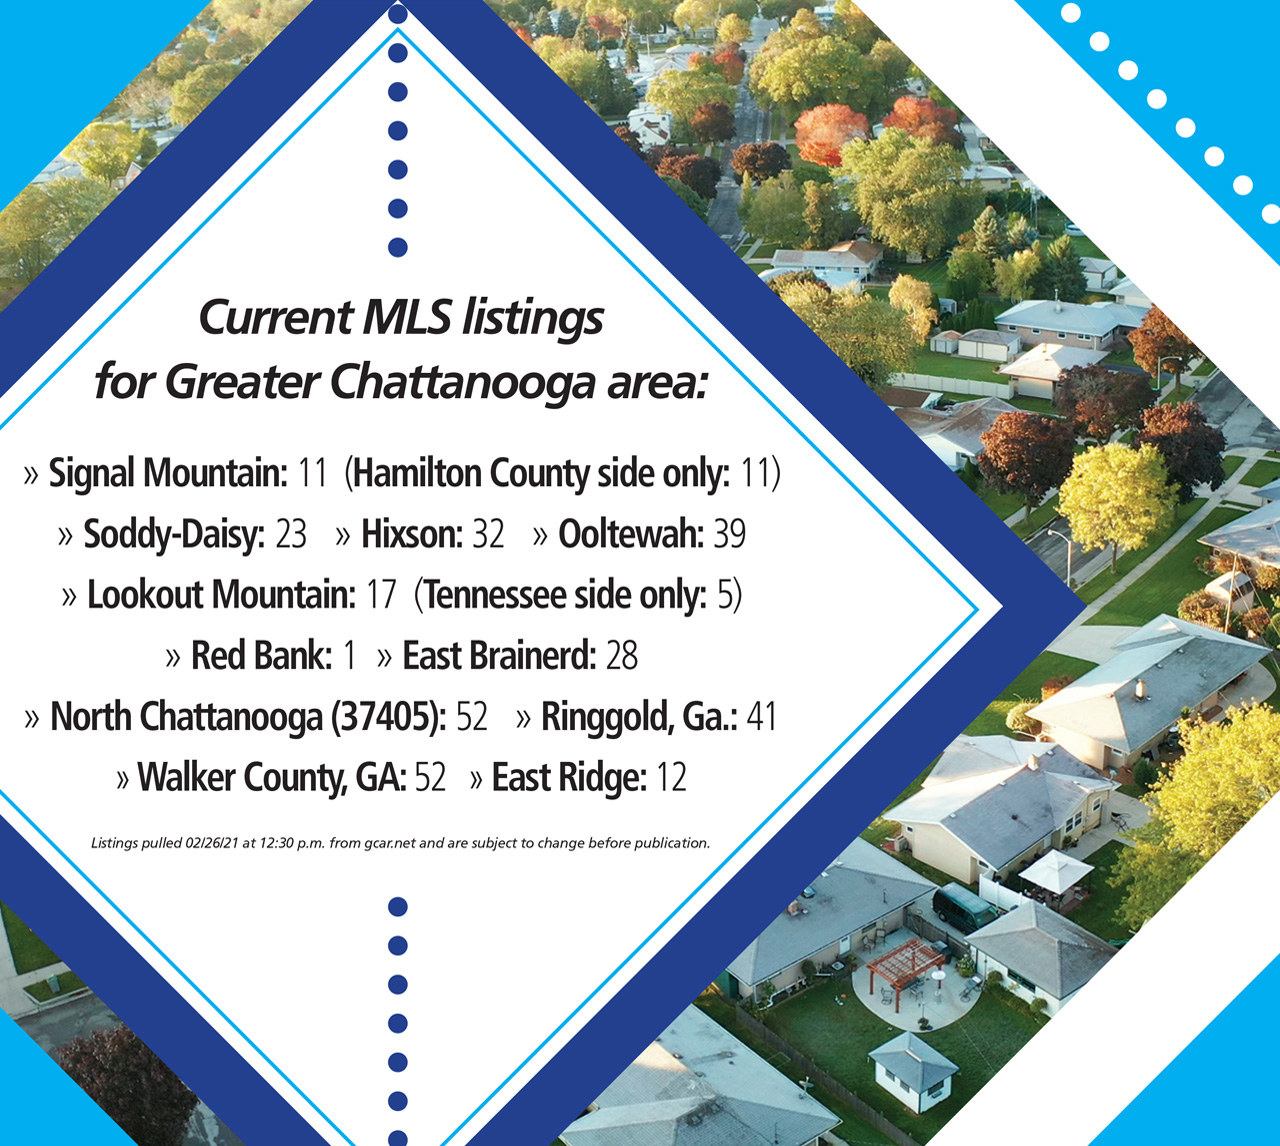 Current MLS Listings in Chattanooga TN for 2021 - Walker County, Hixson, Red Bank, East Brainerd and More